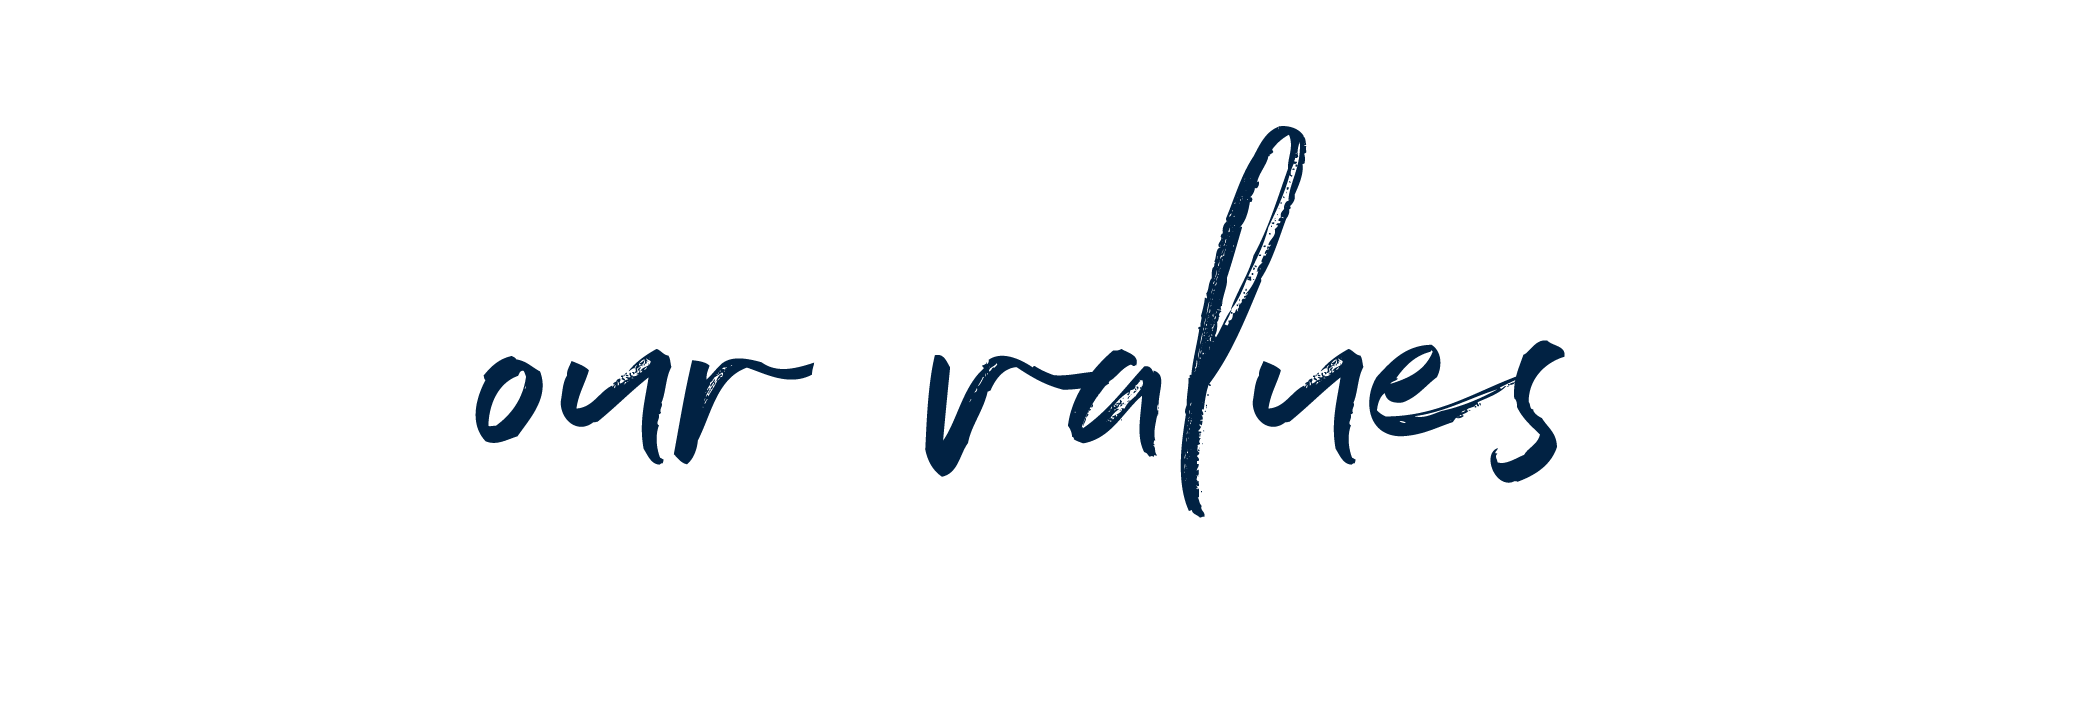 our values-24.png